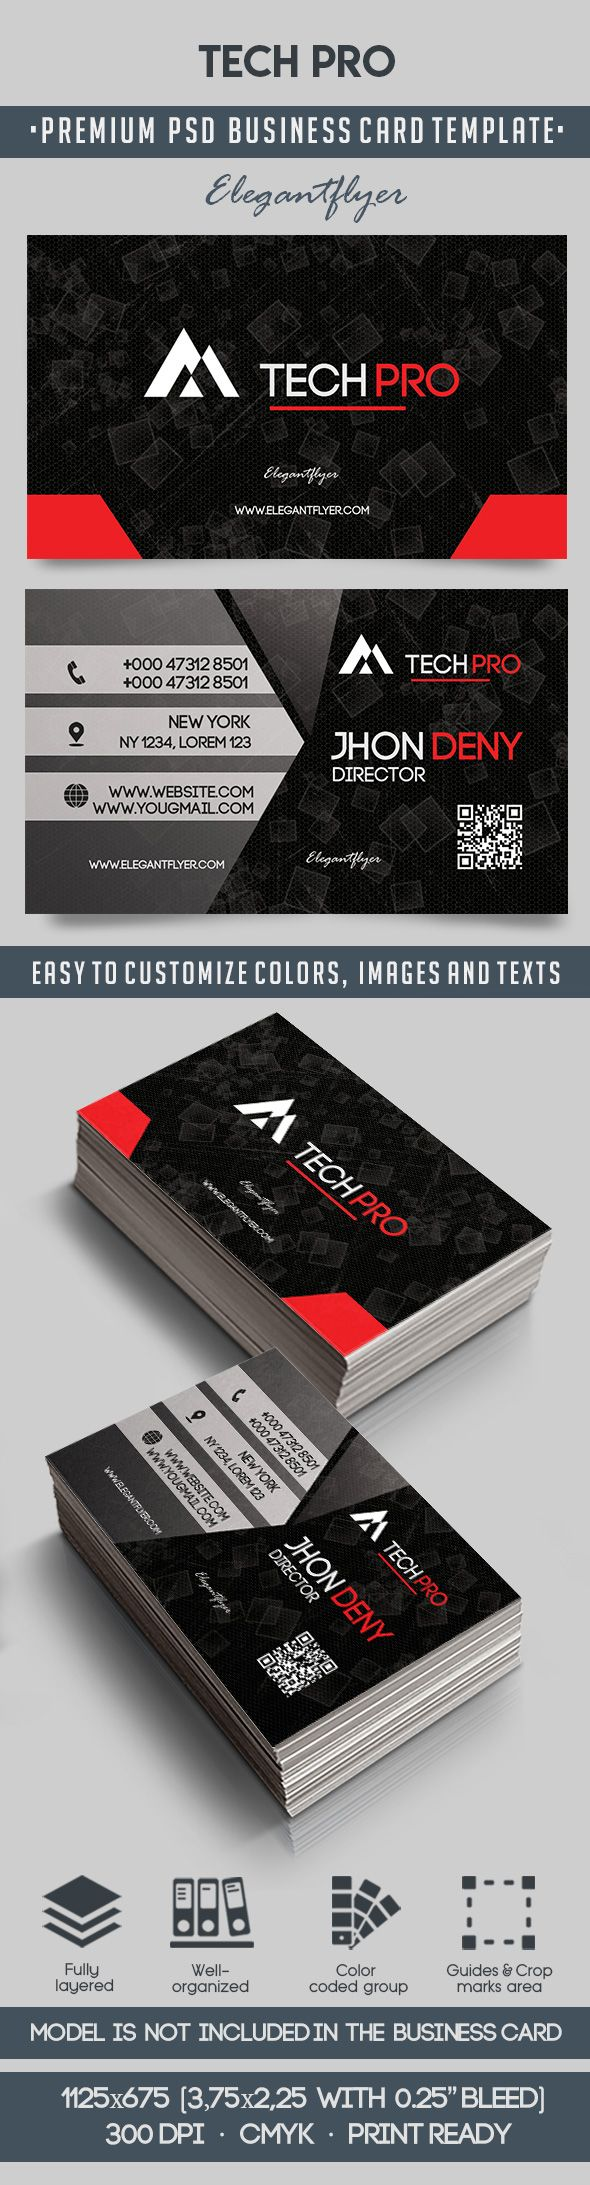 Tech pro premium business card templates psd by elegantflyer tech pro premium business card templates psd flashek Images